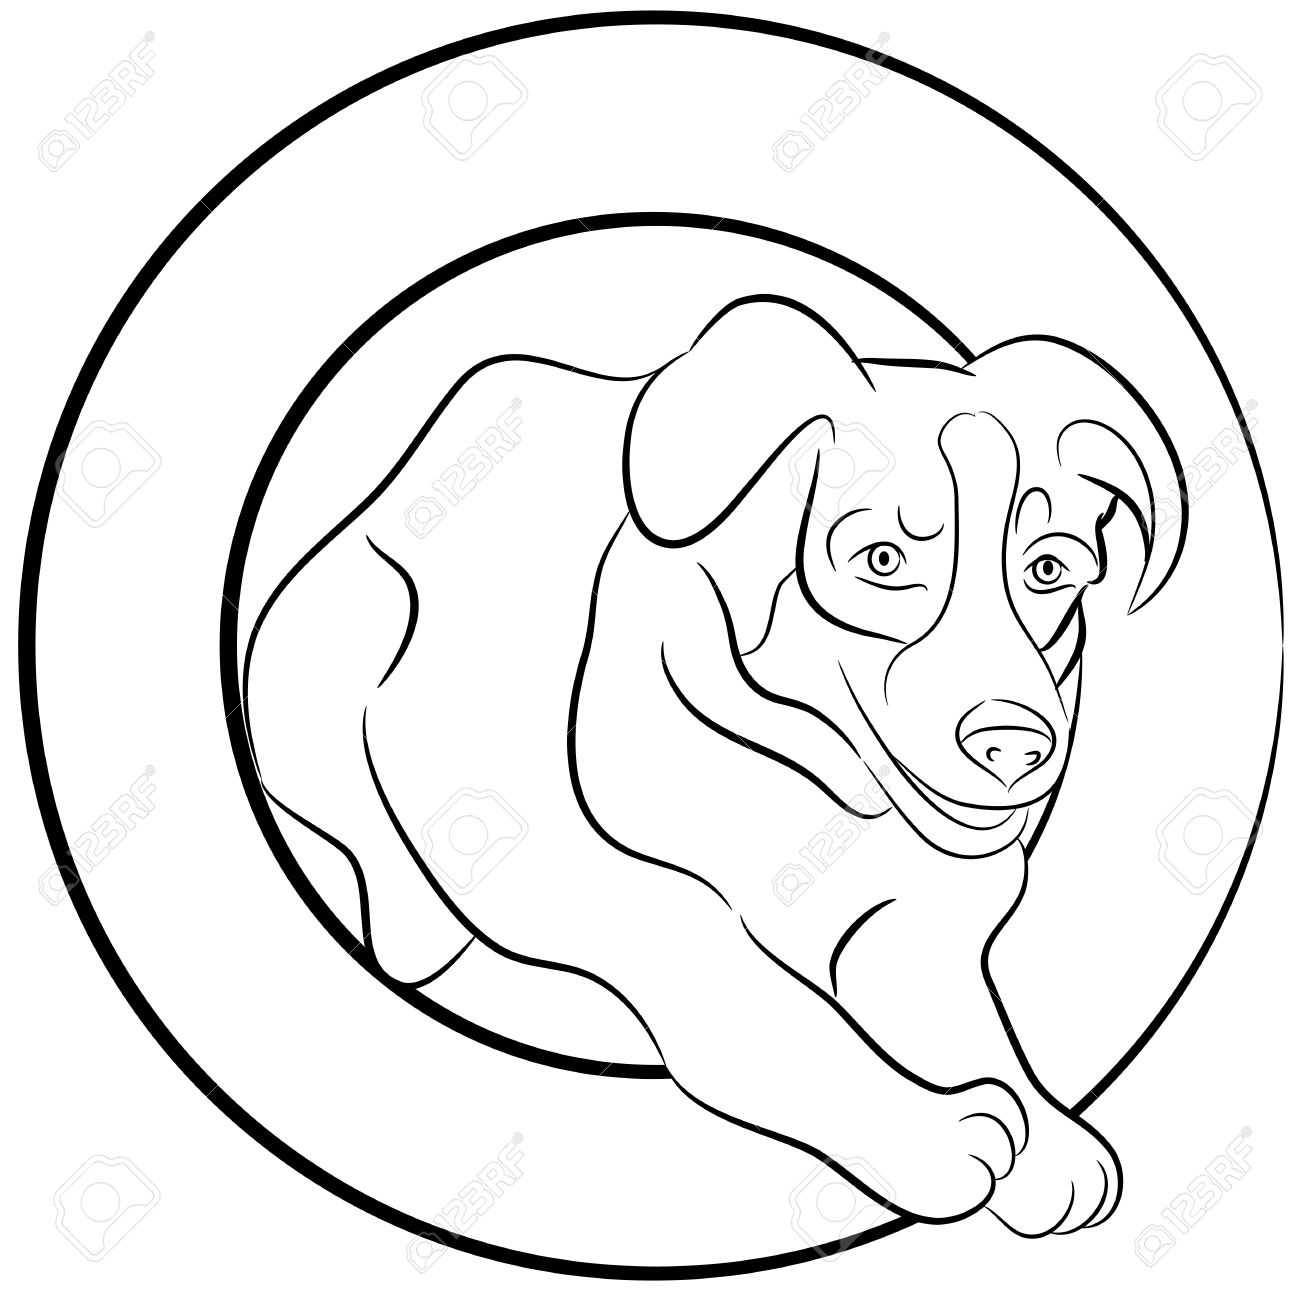 An Image Of A Border Collie Dog Jumping Through A Hoop Stock Vector  14575005 An Image